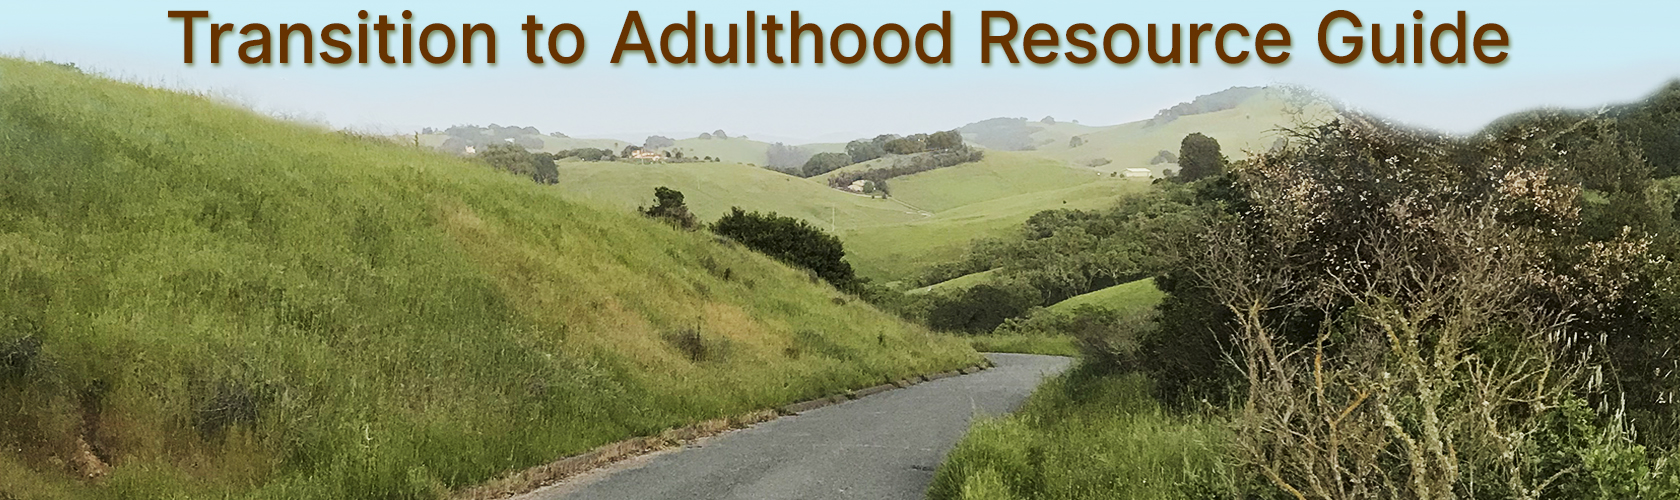 Transition to Adulthood Resource Guide